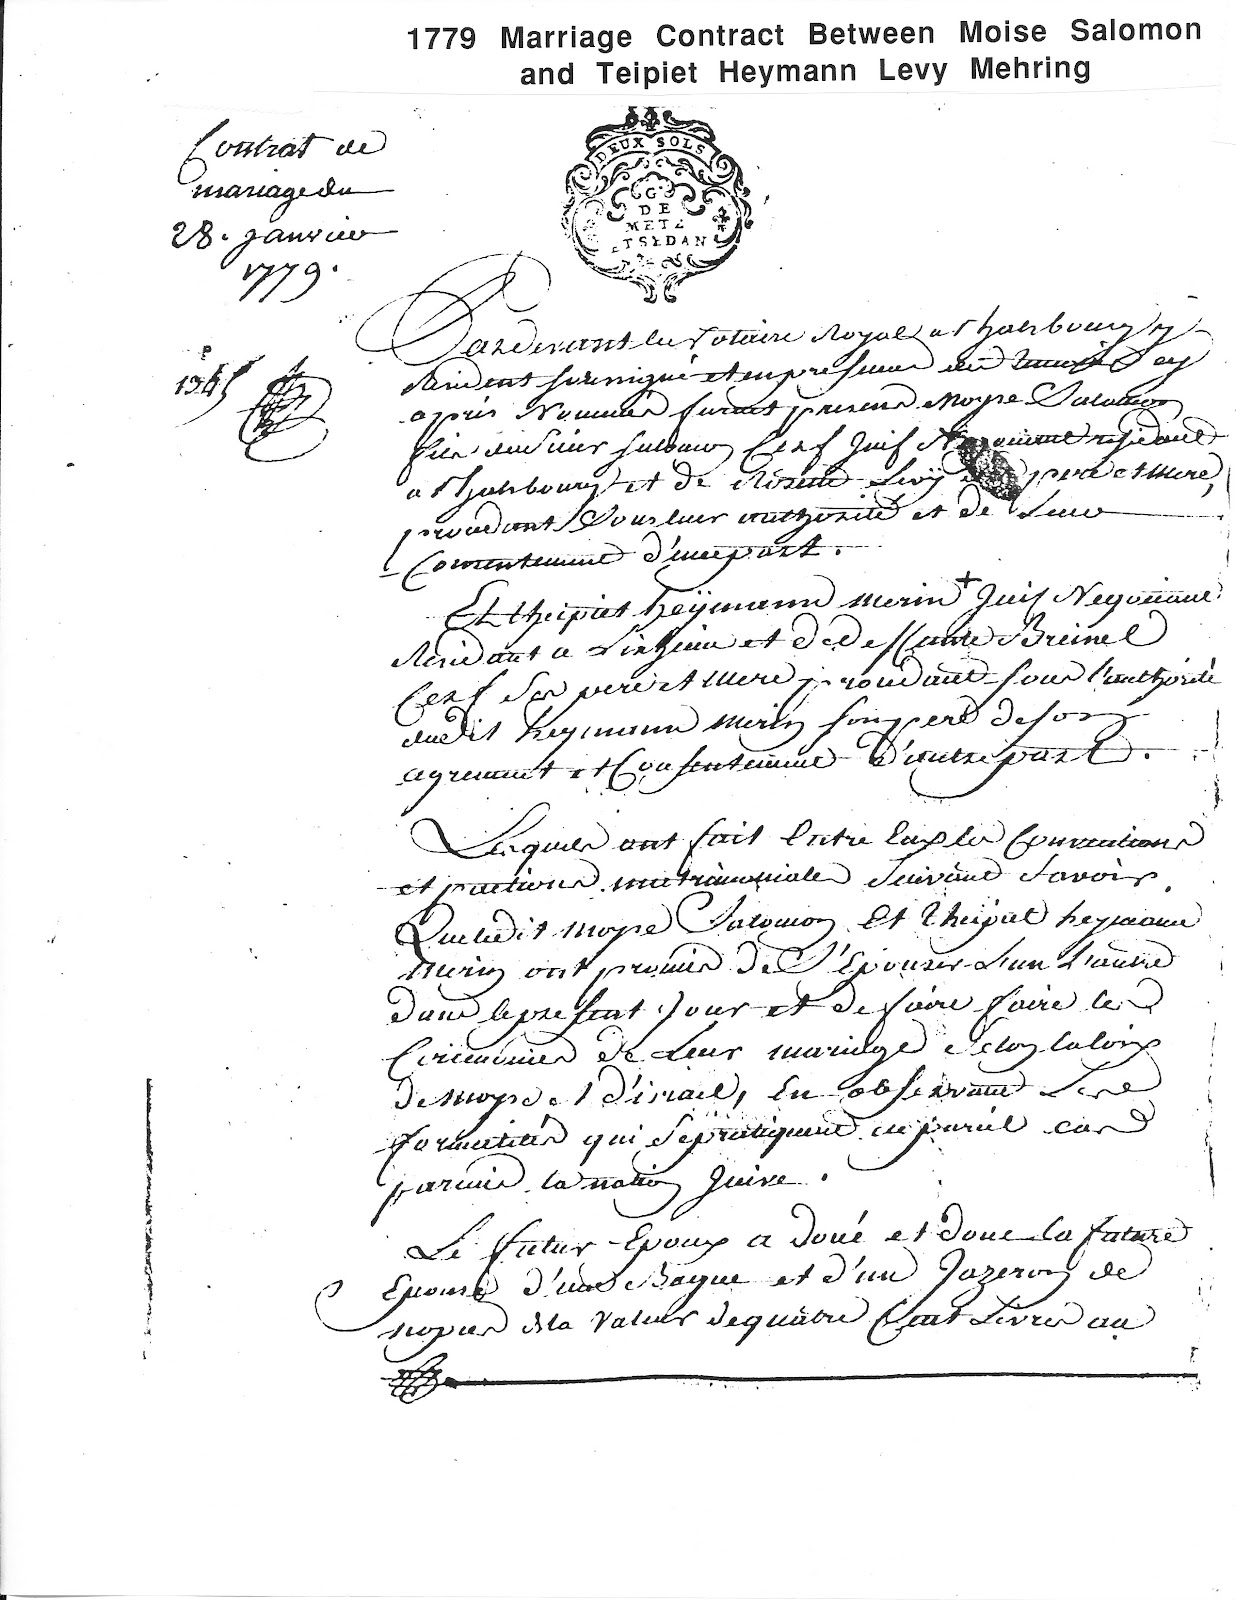 Cerf ancestry 1779 marriage contract page one altavistaventures Choice Image